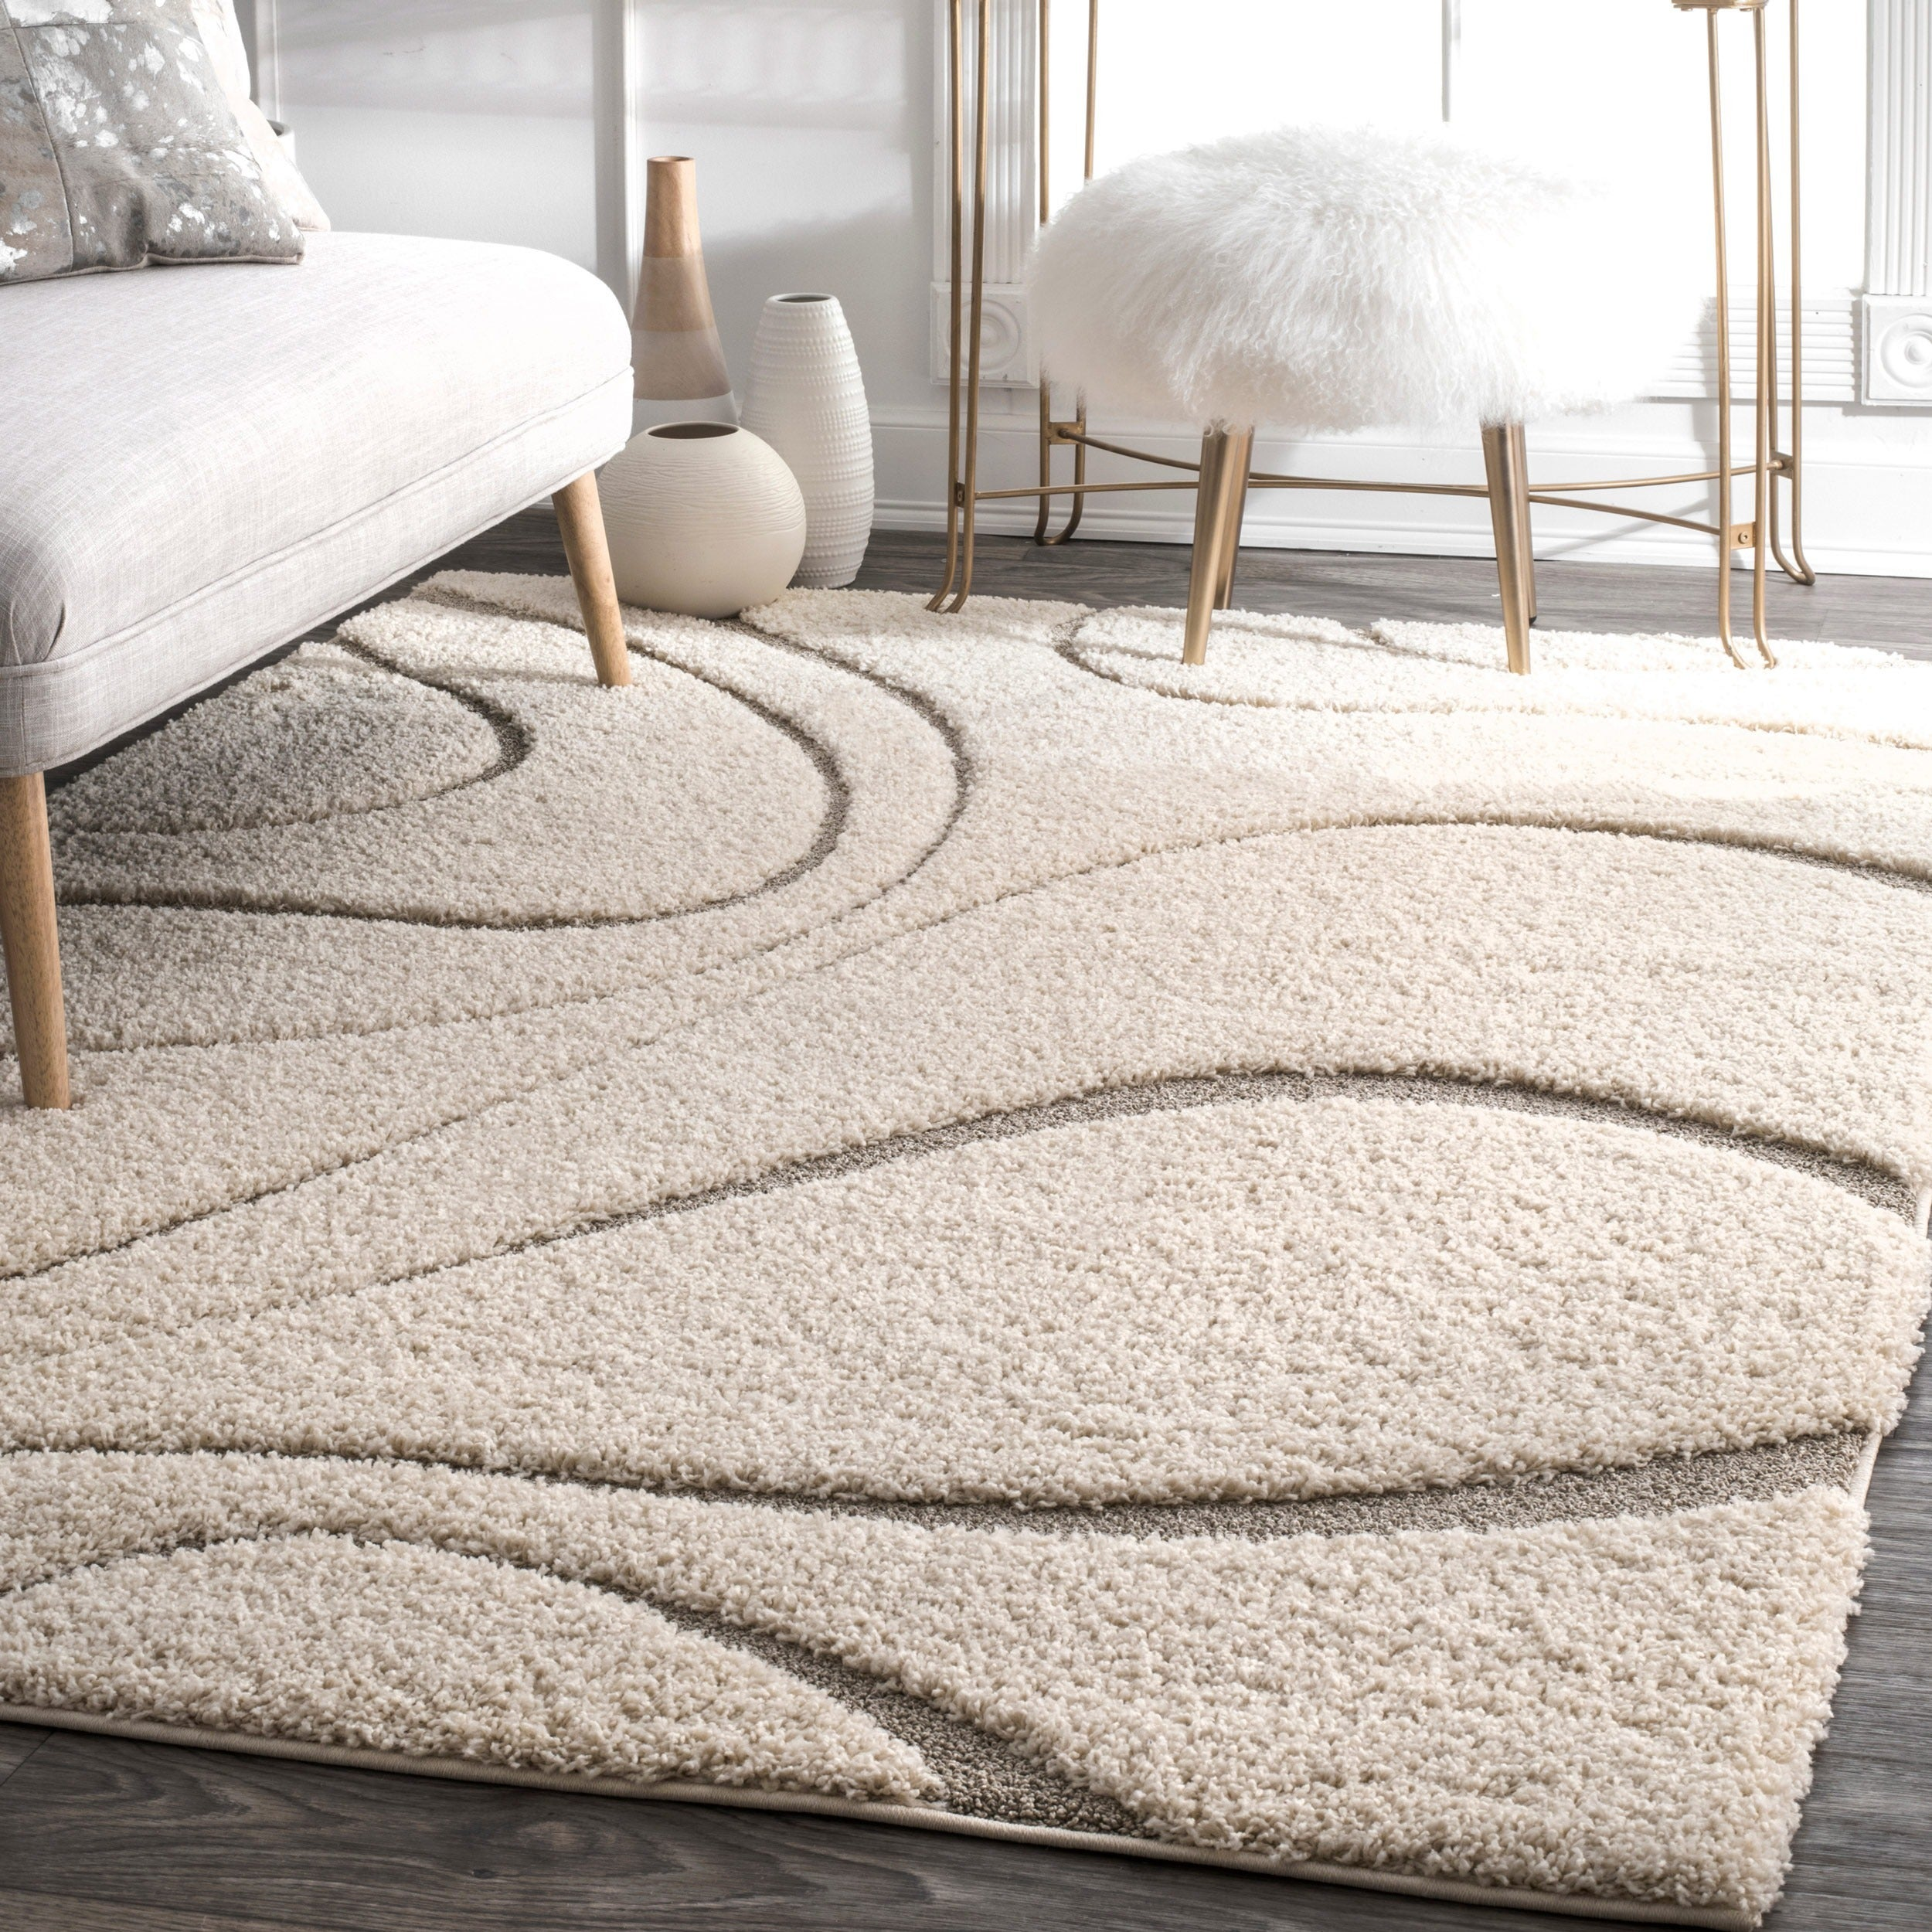 Shop nuloom soft and plush curves ivory beige shag area rug 92 x 12 92 x 12 on sale free shipping today overstock com 8711417